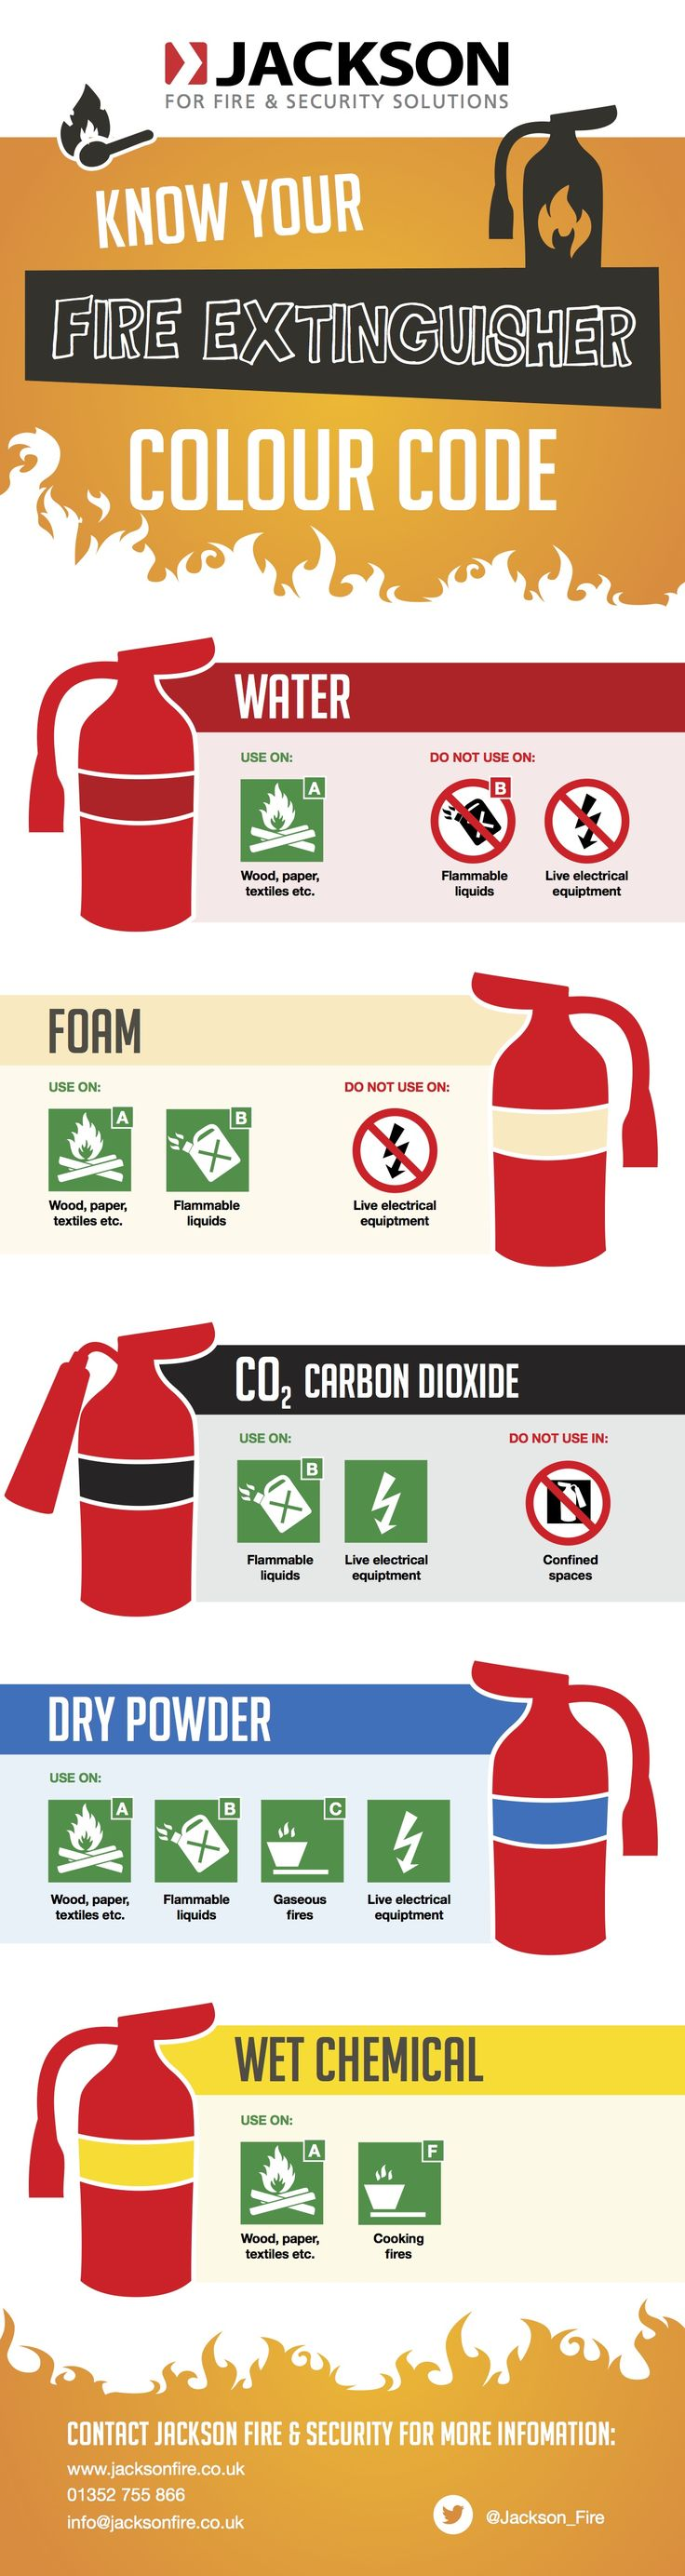 Do you know which fire extinguisher to use in different scenarios? Although there are many types of fire extinguishers, it is important to know which one to use to safely deal with a fire. Our infographic below will help you understand which fire extinguisher to use should you ever need to use one.   In summary:Read more